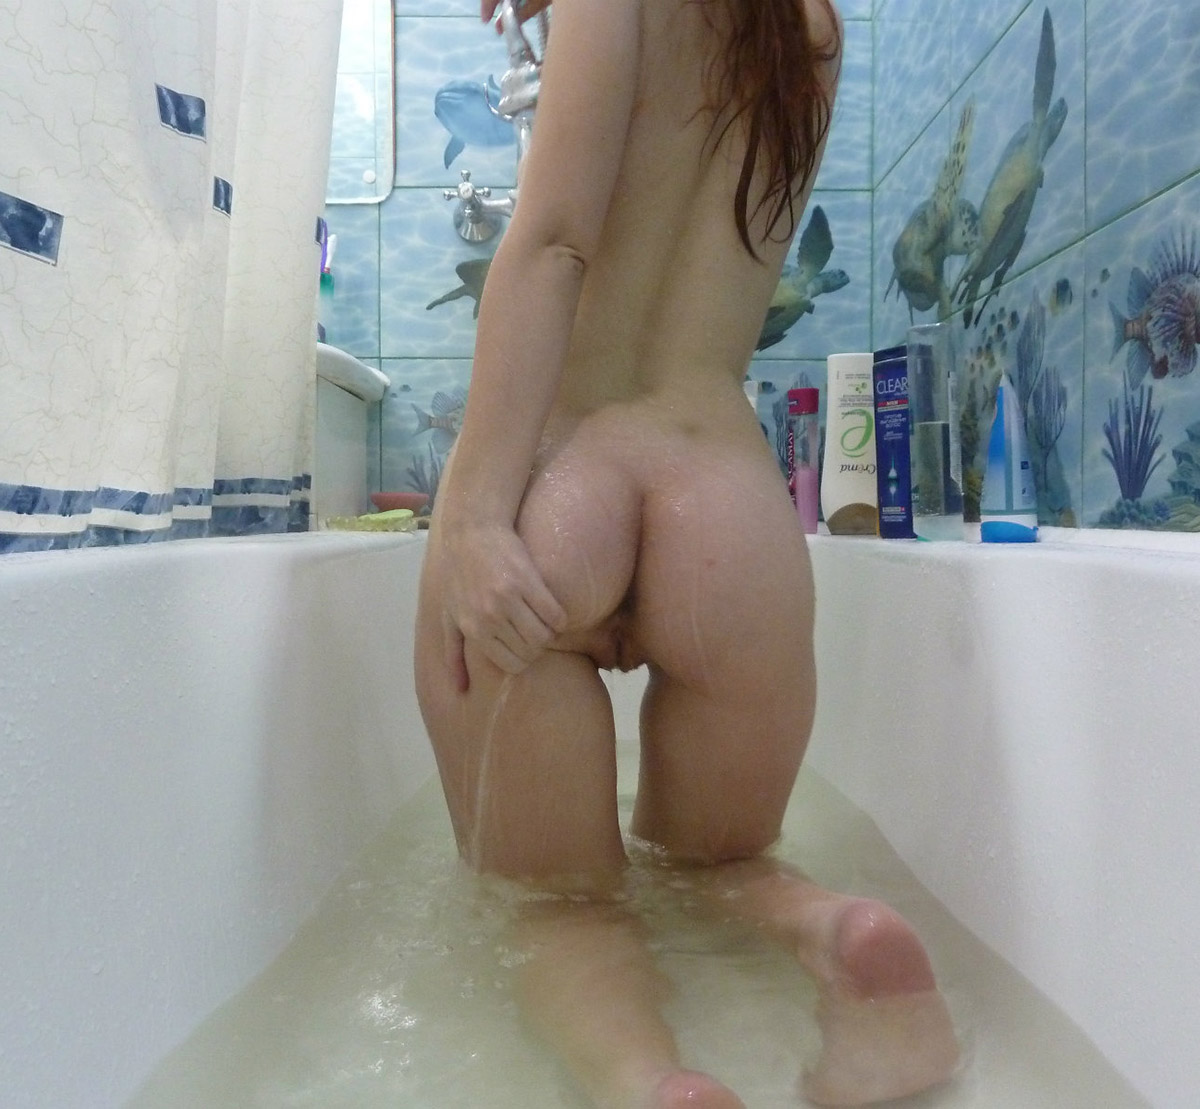 Sexy Teen With Hot Body Takes Shower - YouPorncom